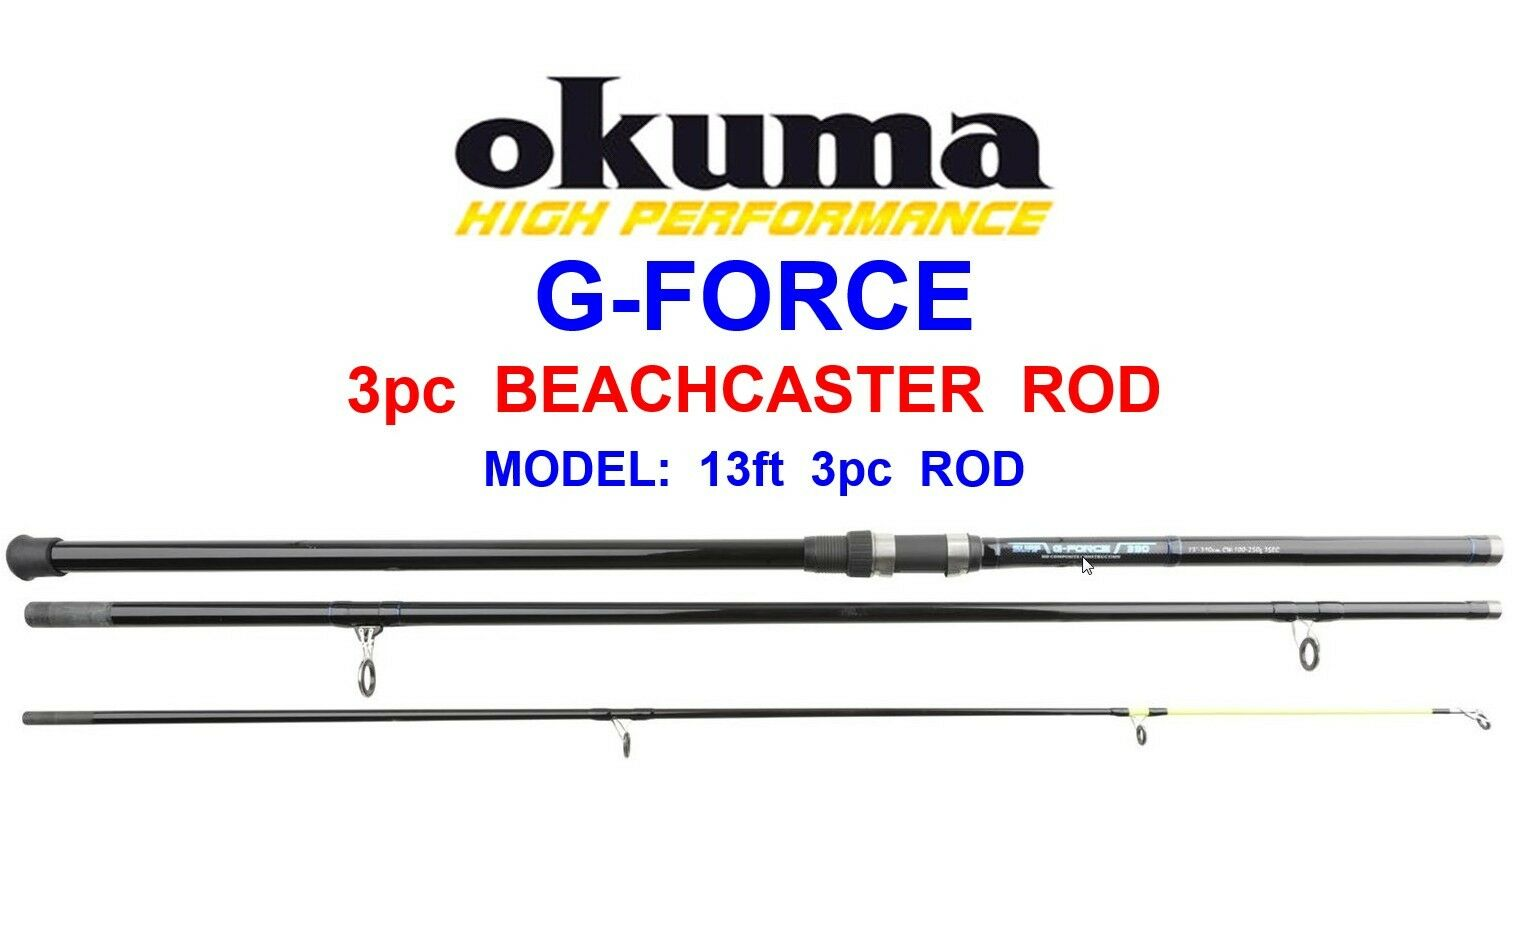 OKUMA 13ft 3pc BEACHCASTER ROD FOR SEA SURF FISHING COD BASS PIKE RIGS LURES